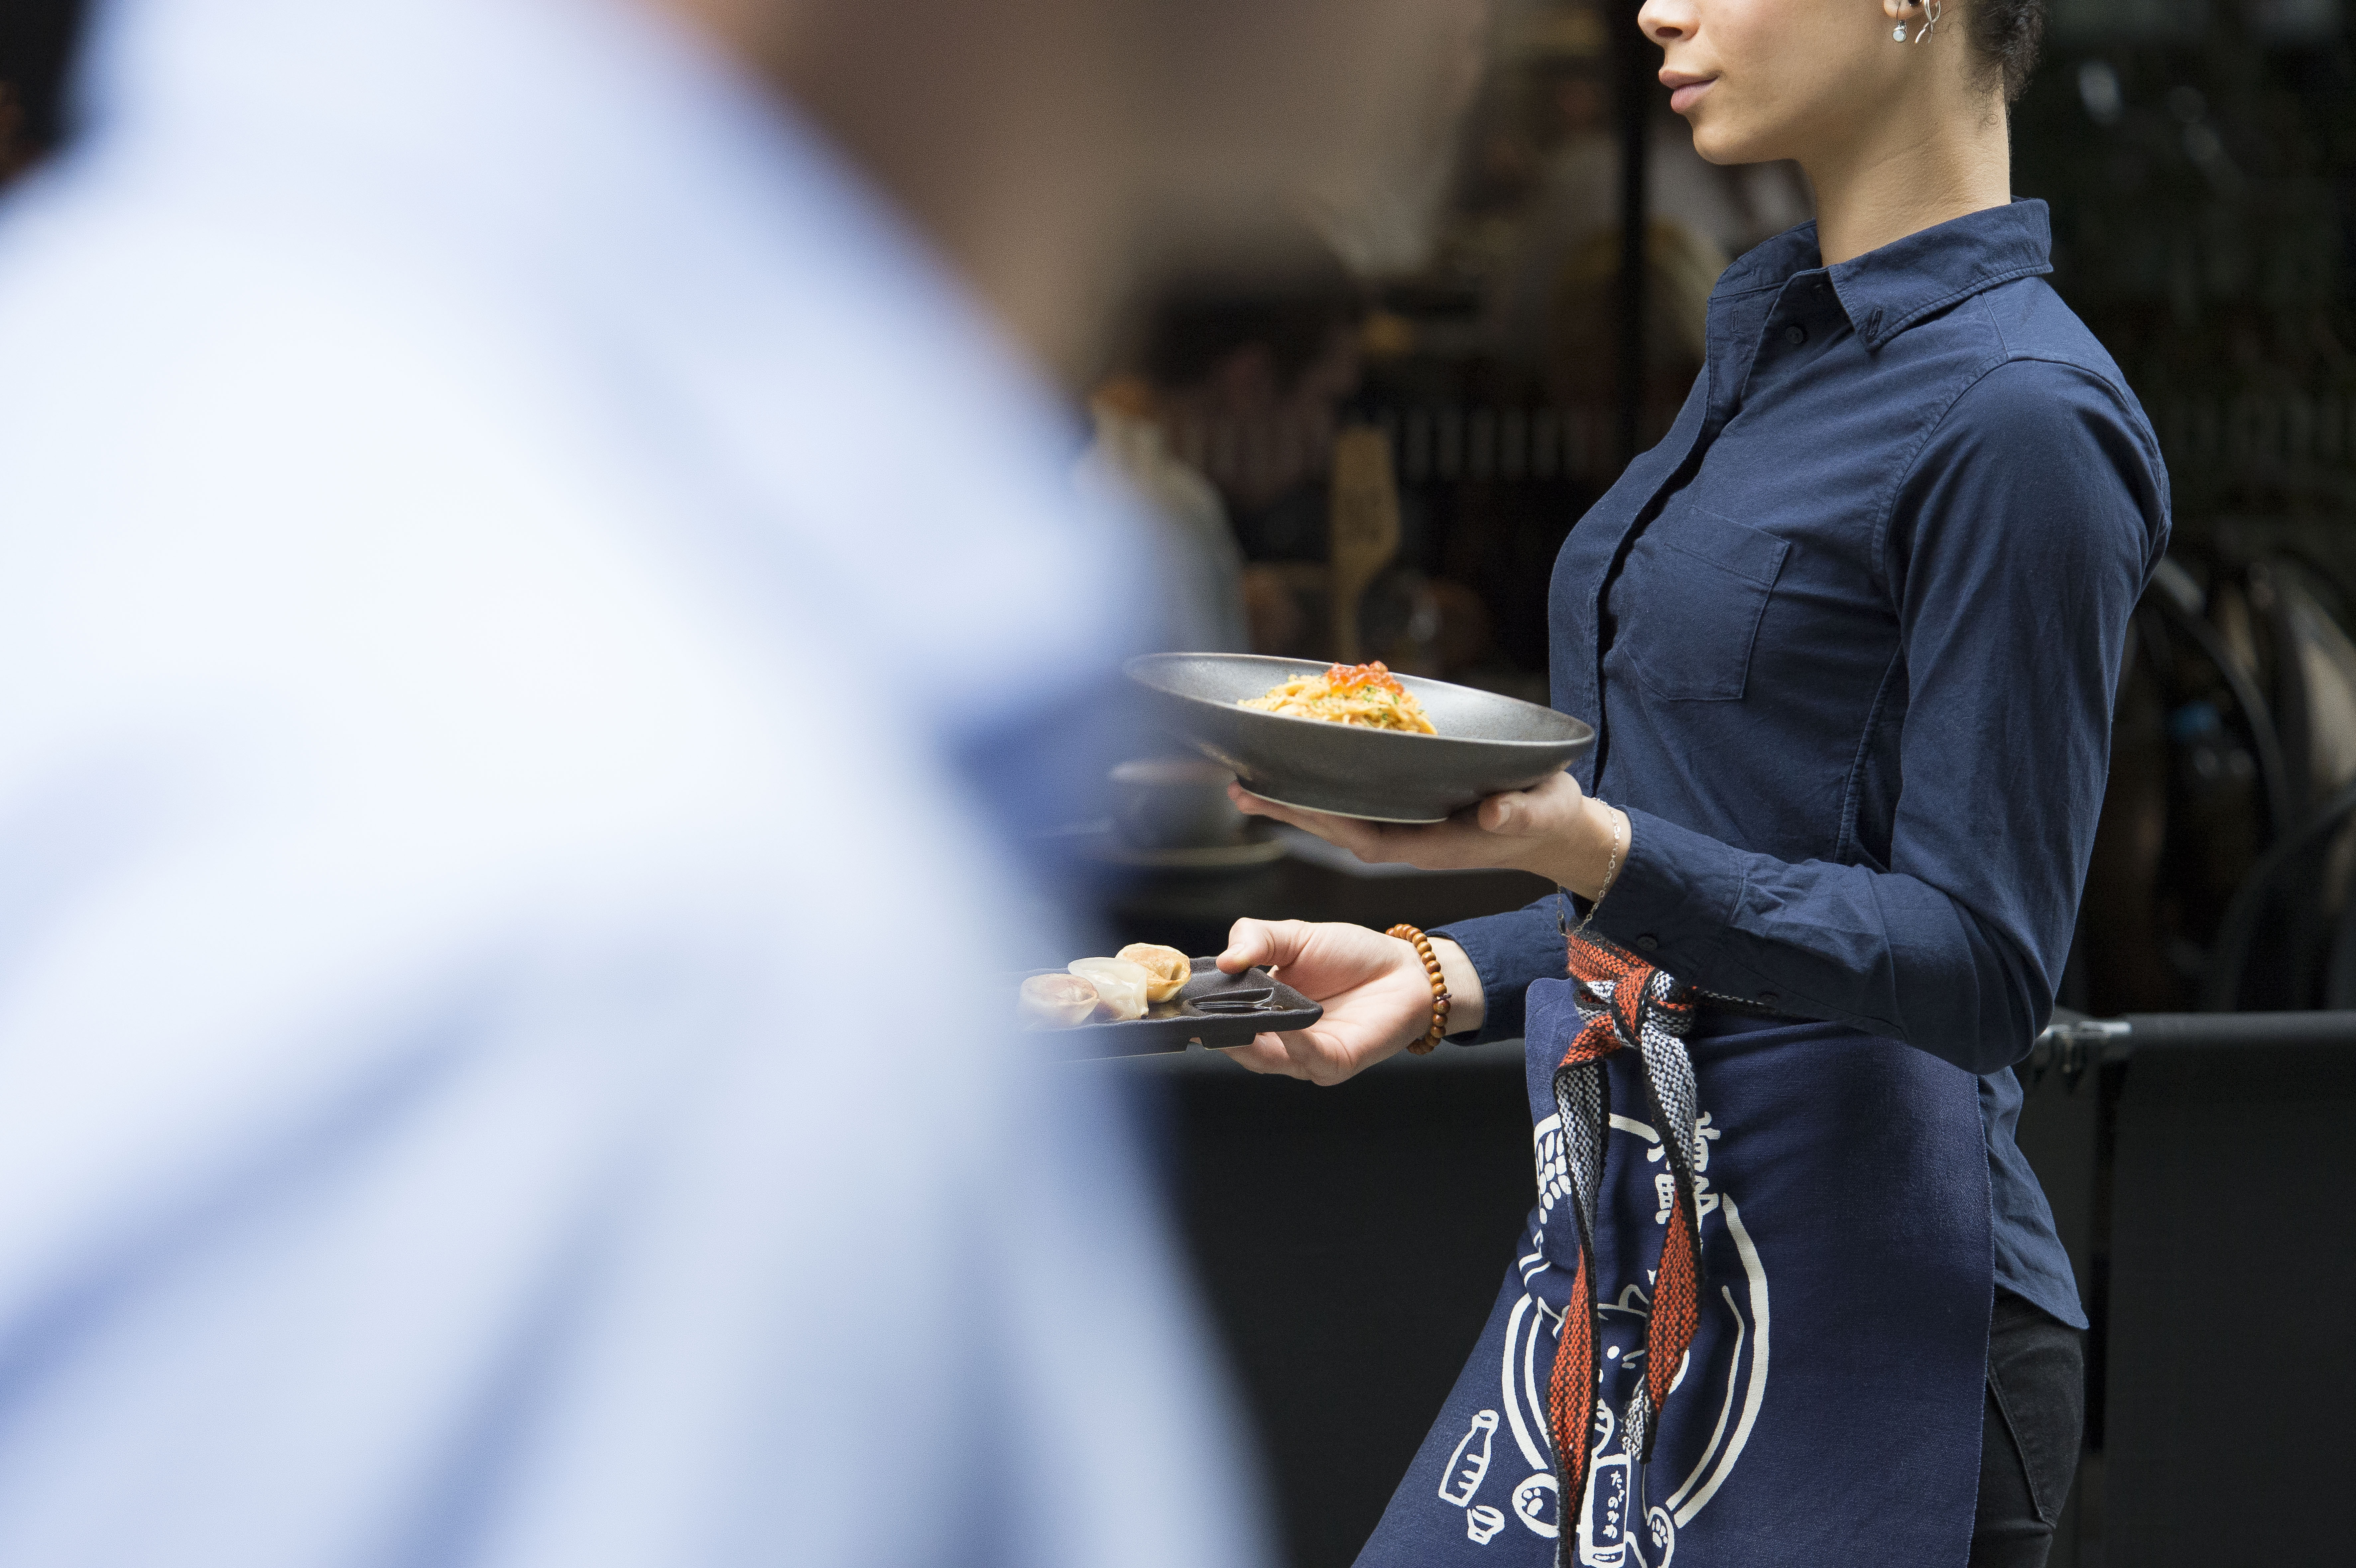 waitress bringing a plate of food to customers